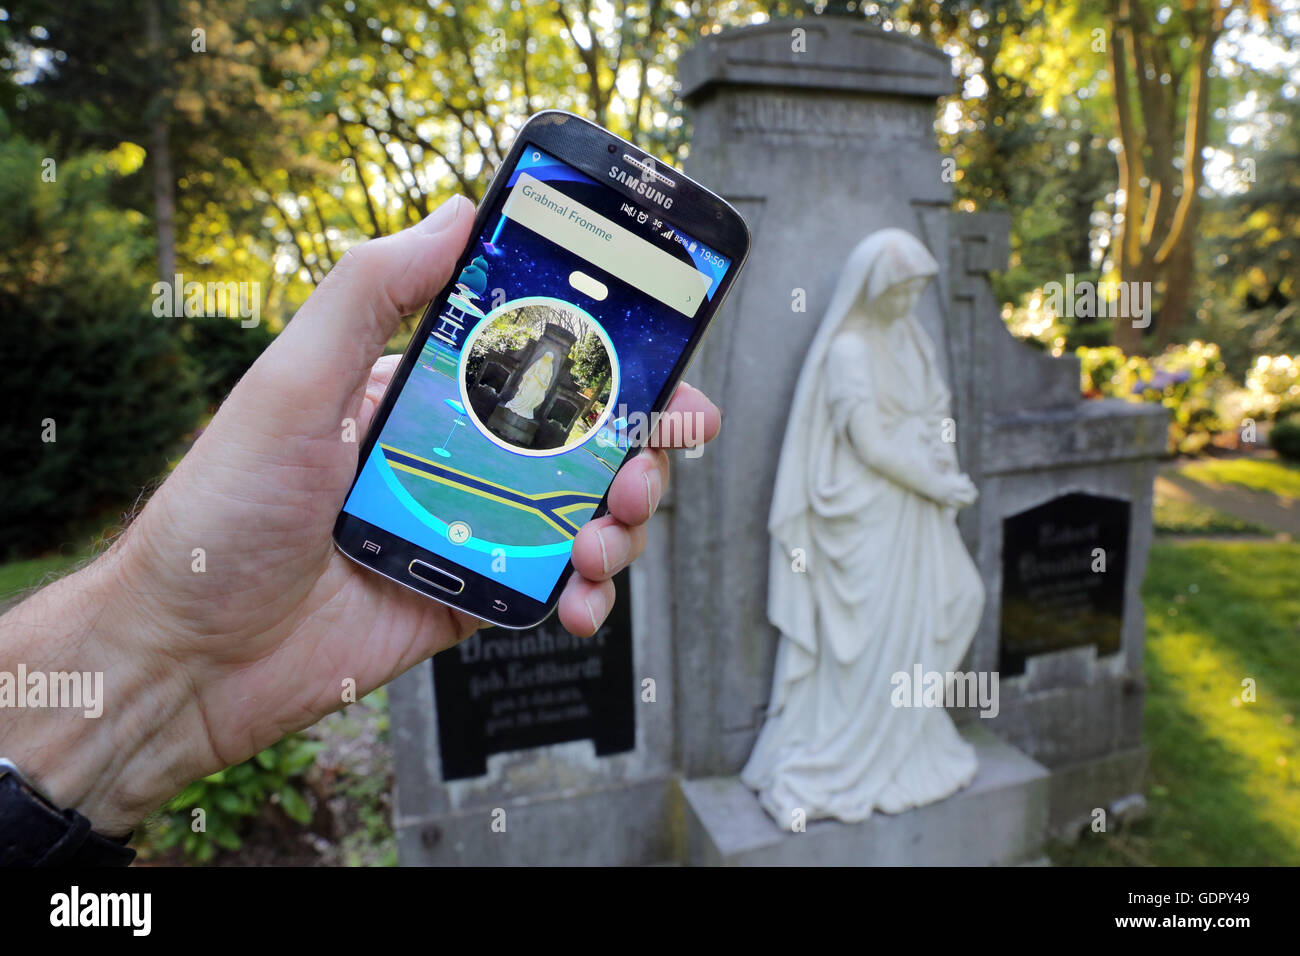 Pokémon go-player with his cellphone on a cemetery in Dortmund, Germany Stock Photo